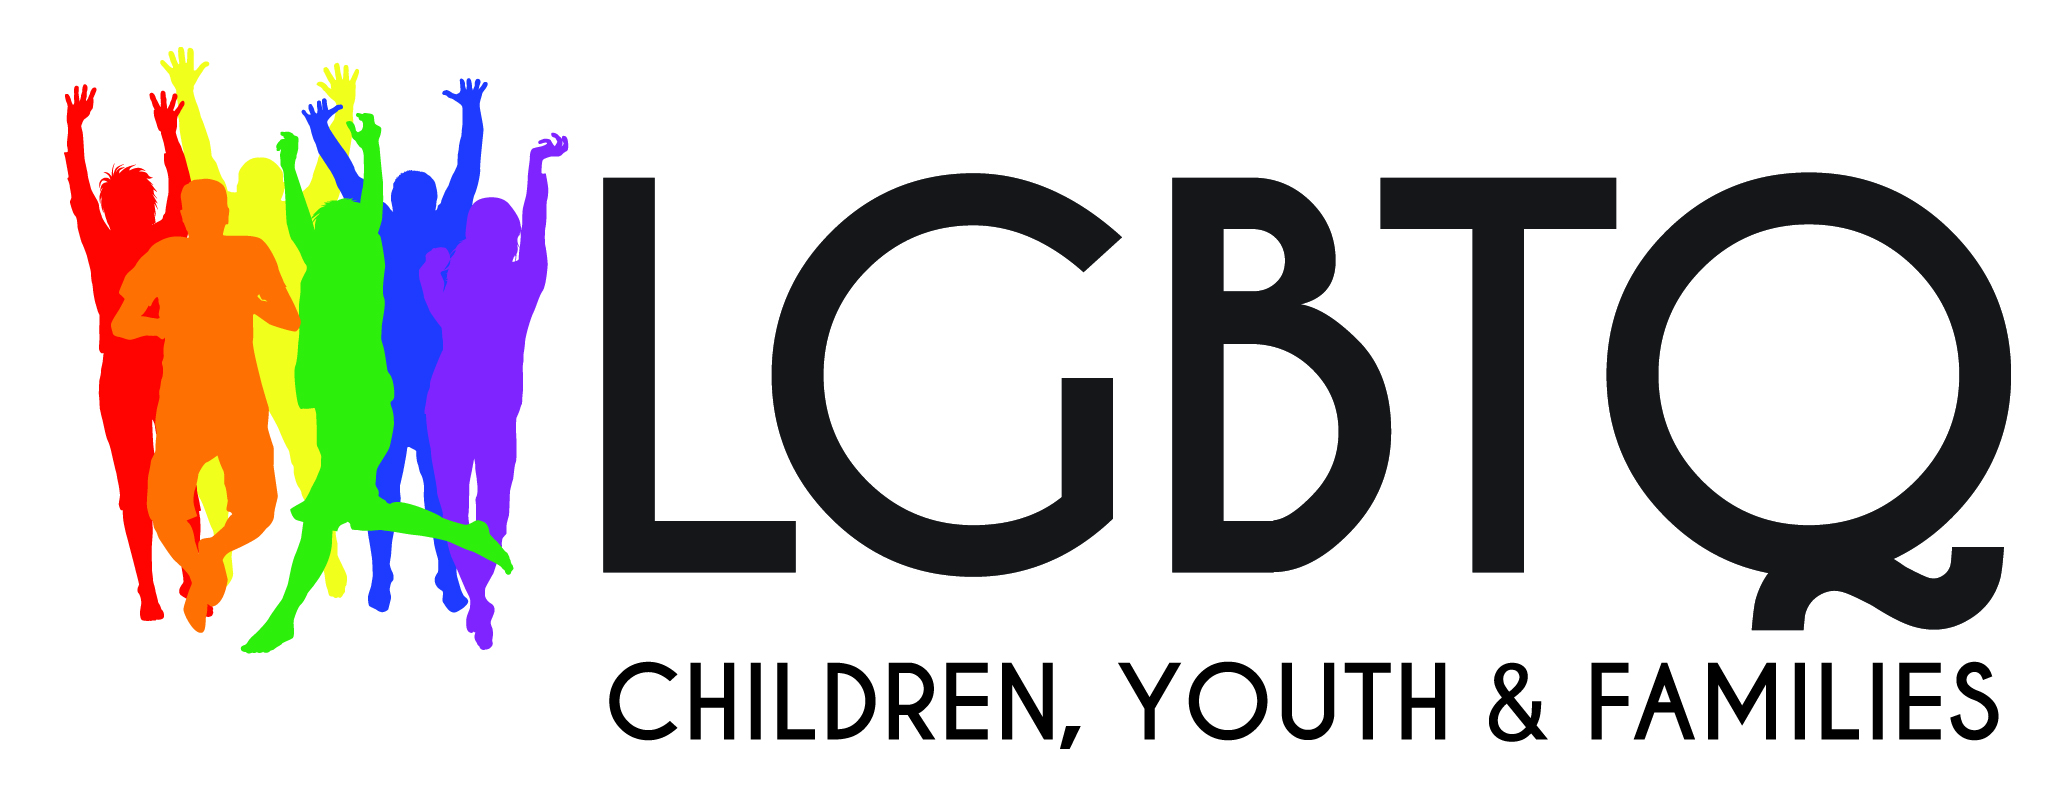 Gay and lesbian youth services